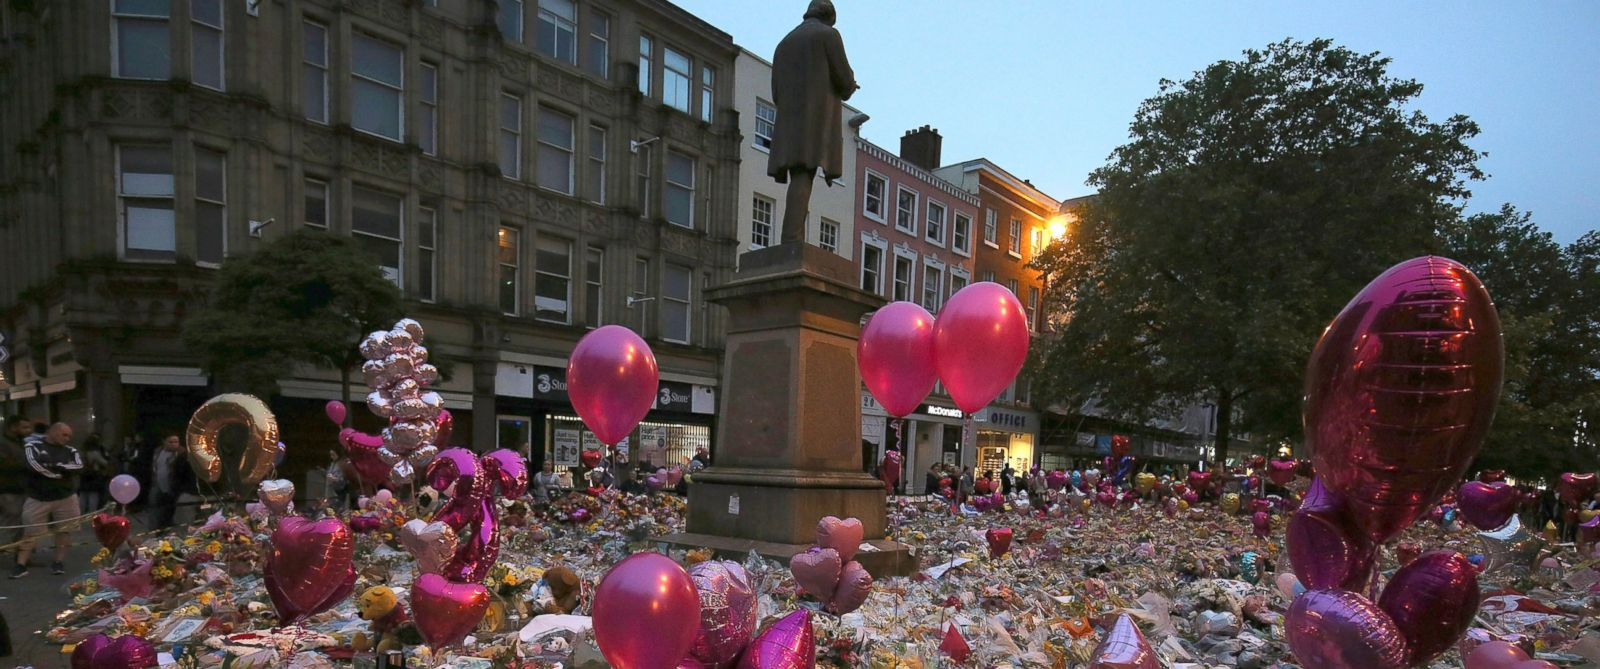 PHOTO: People pay their respects for the victims of the Manchester bombing during a vigil at St Anns Square in Manchester, Britain, May 29, 2017.